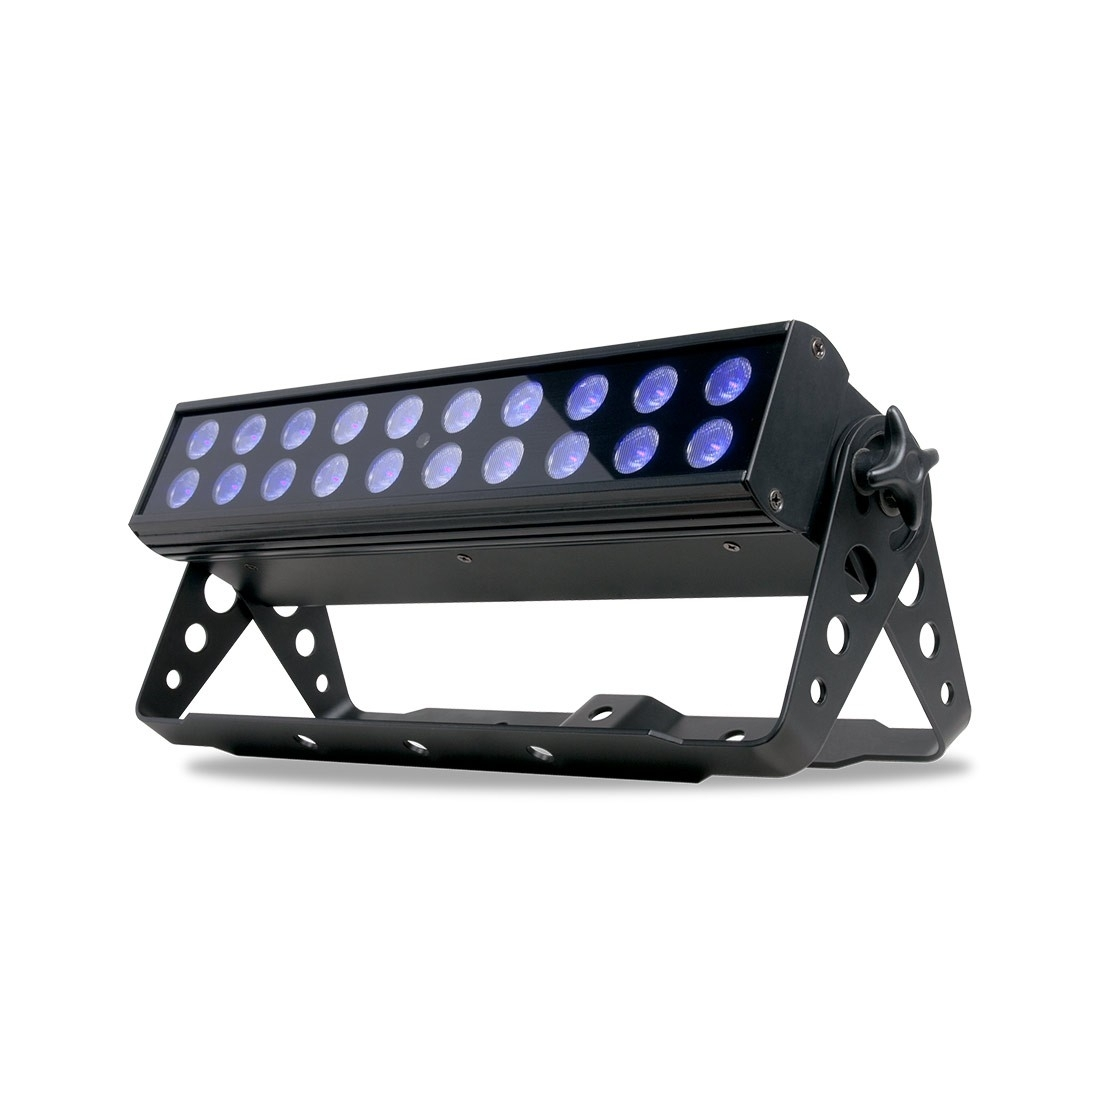 ADJ UV LED BAR 20